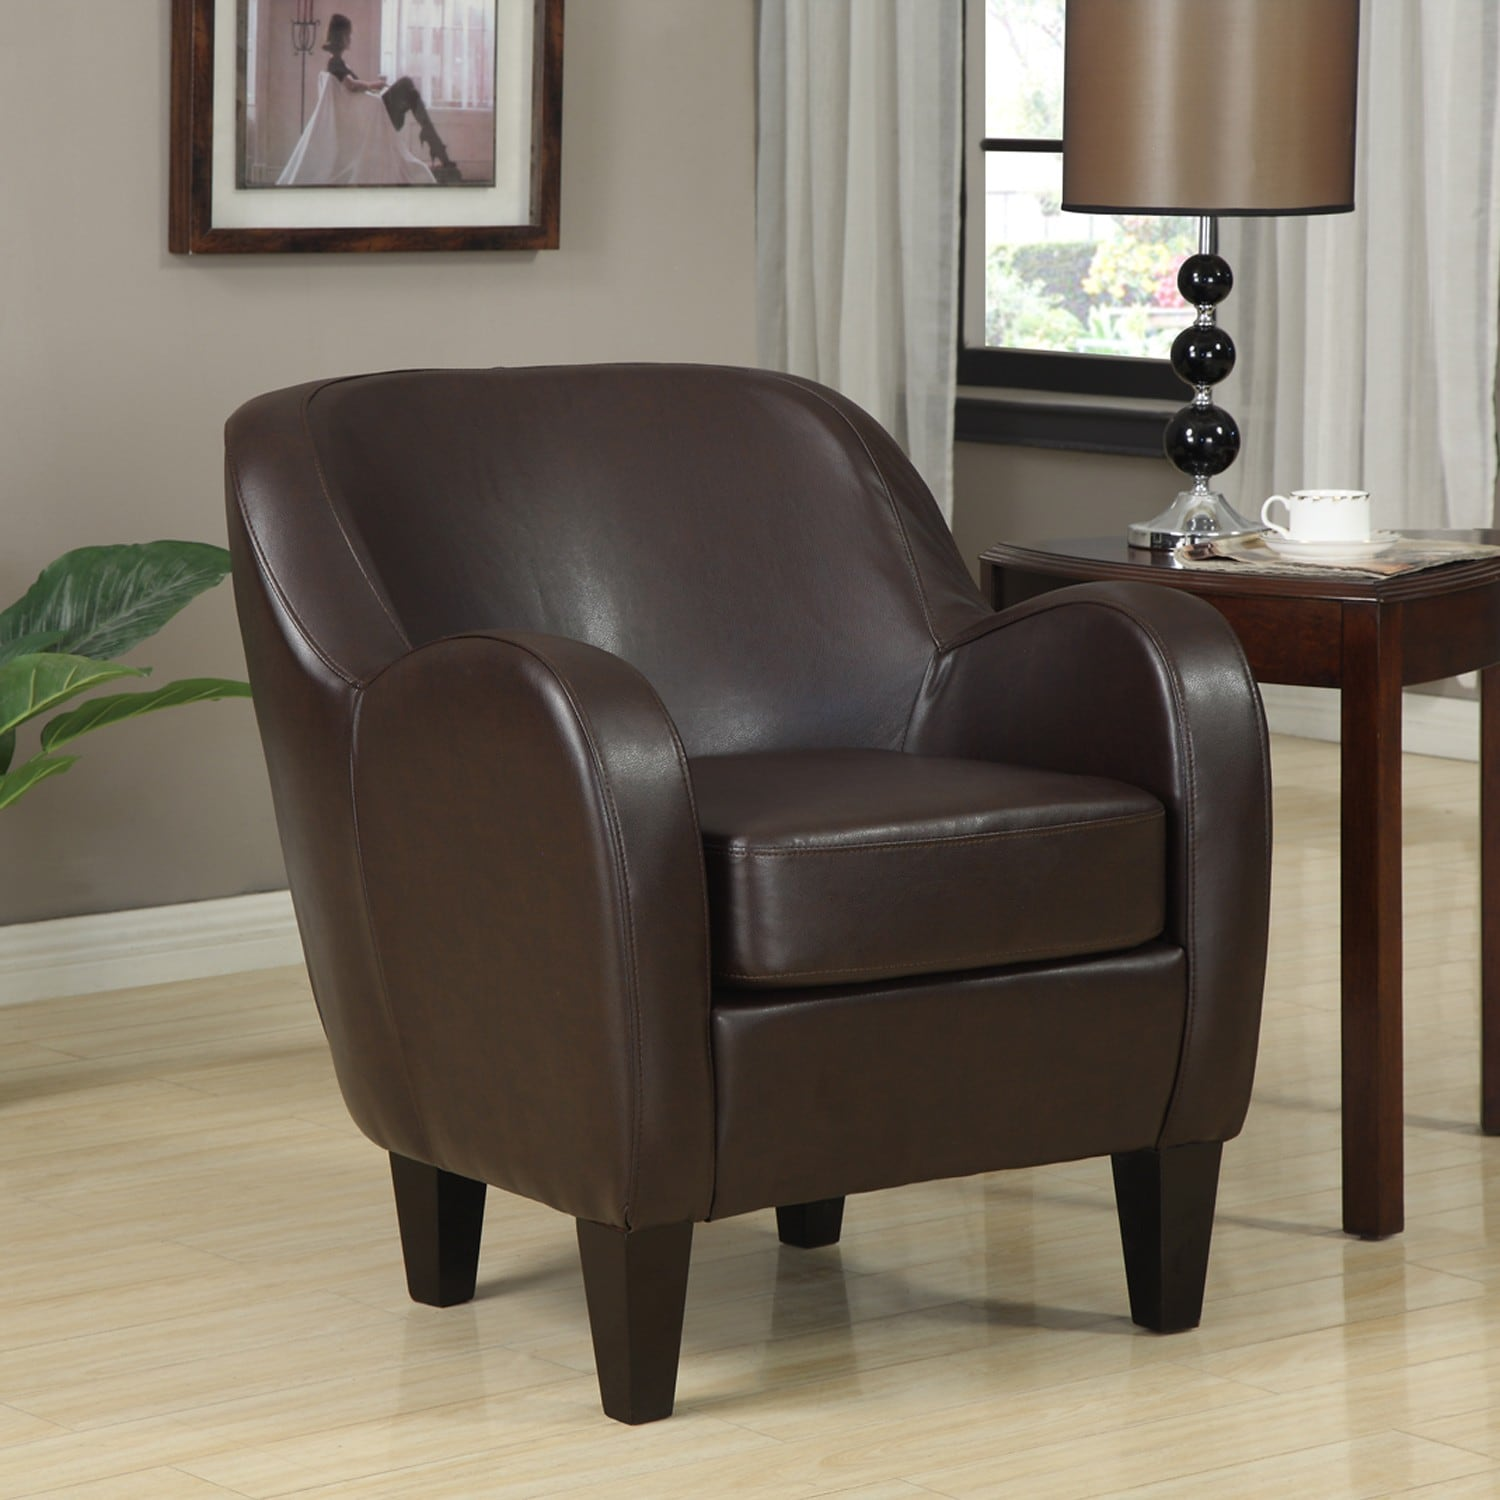 Leather Living Room Set Clearance: Bedford Bonded Leather Chair